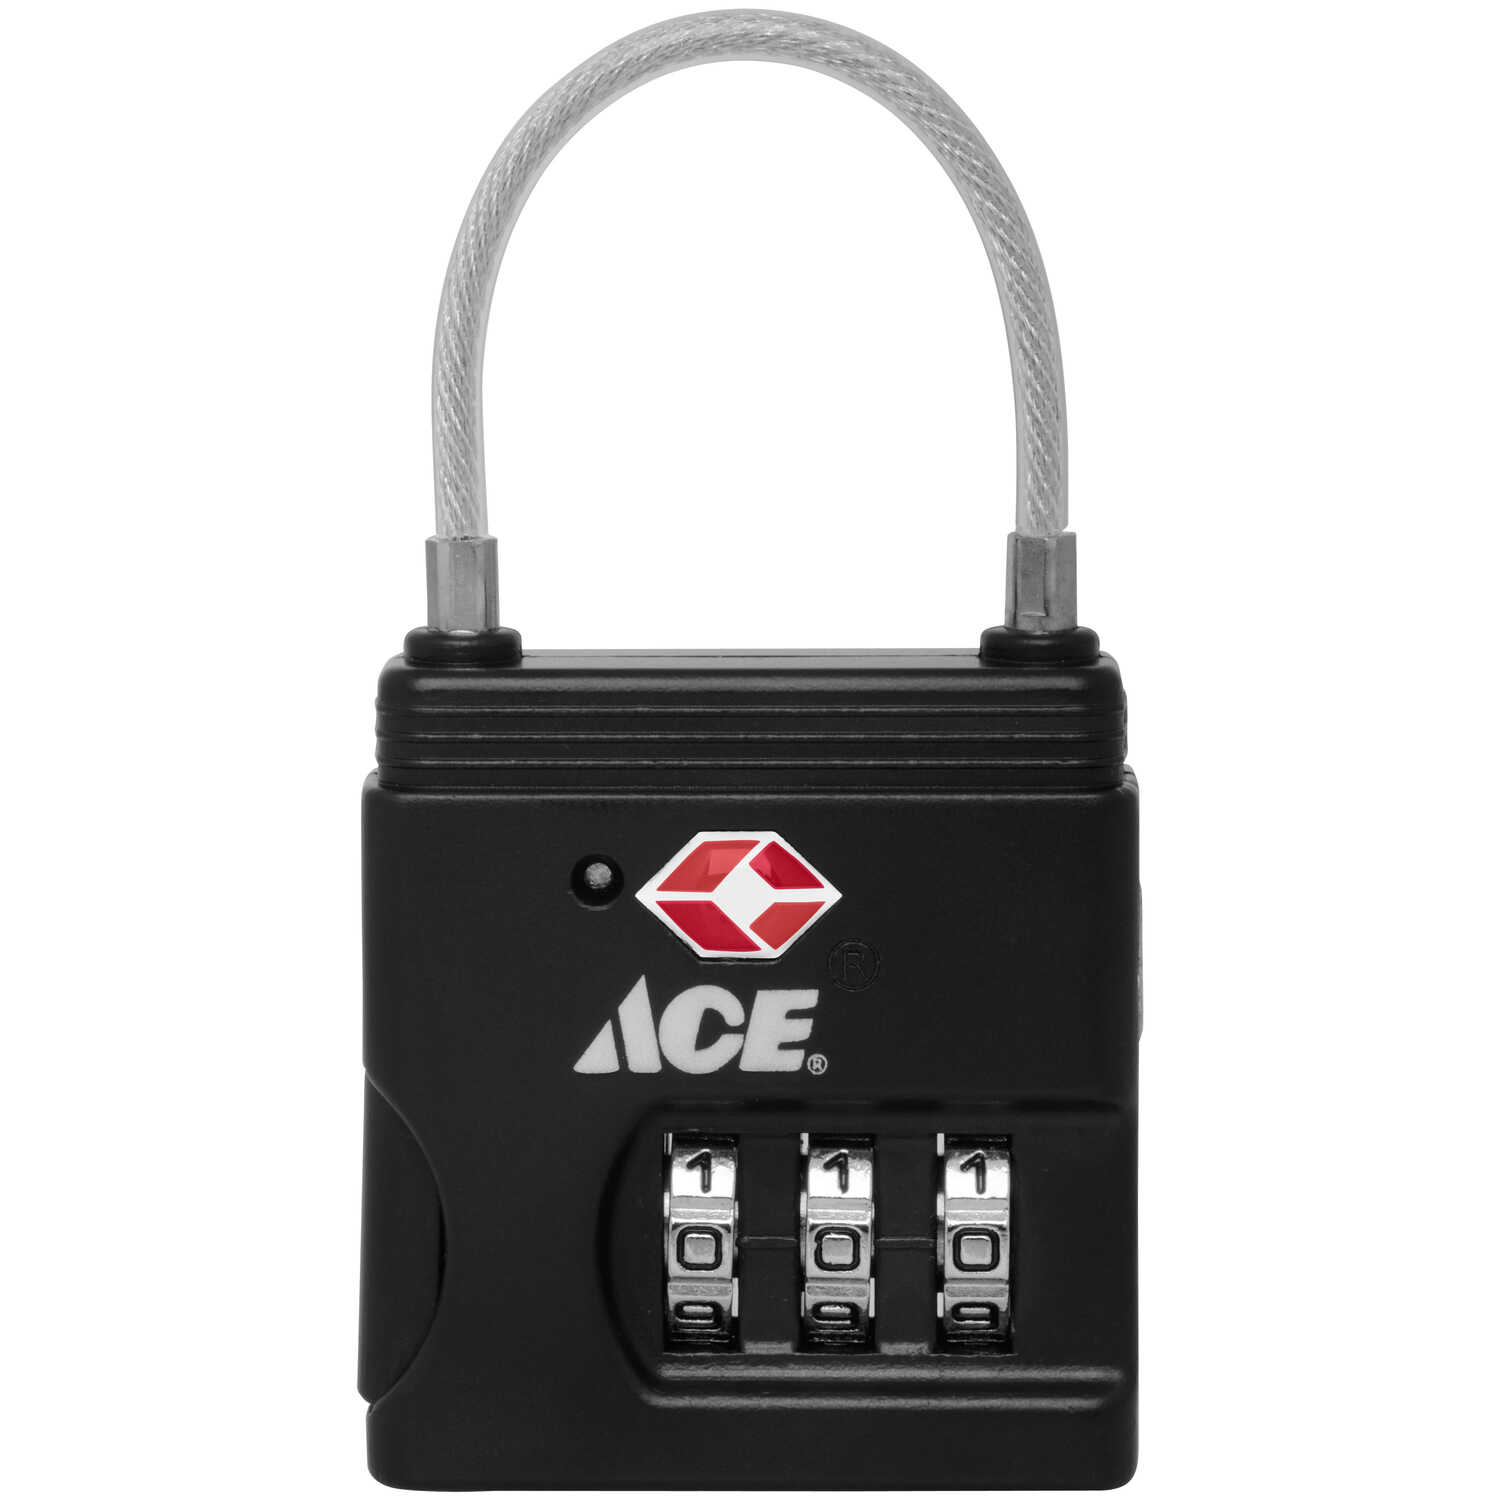 Ace  1-9/16 in. H x 1-7/16 in. W x 1/2 in. L Die-Cast Zinc  3-Dial Combination  Luggage Lock  1 pk